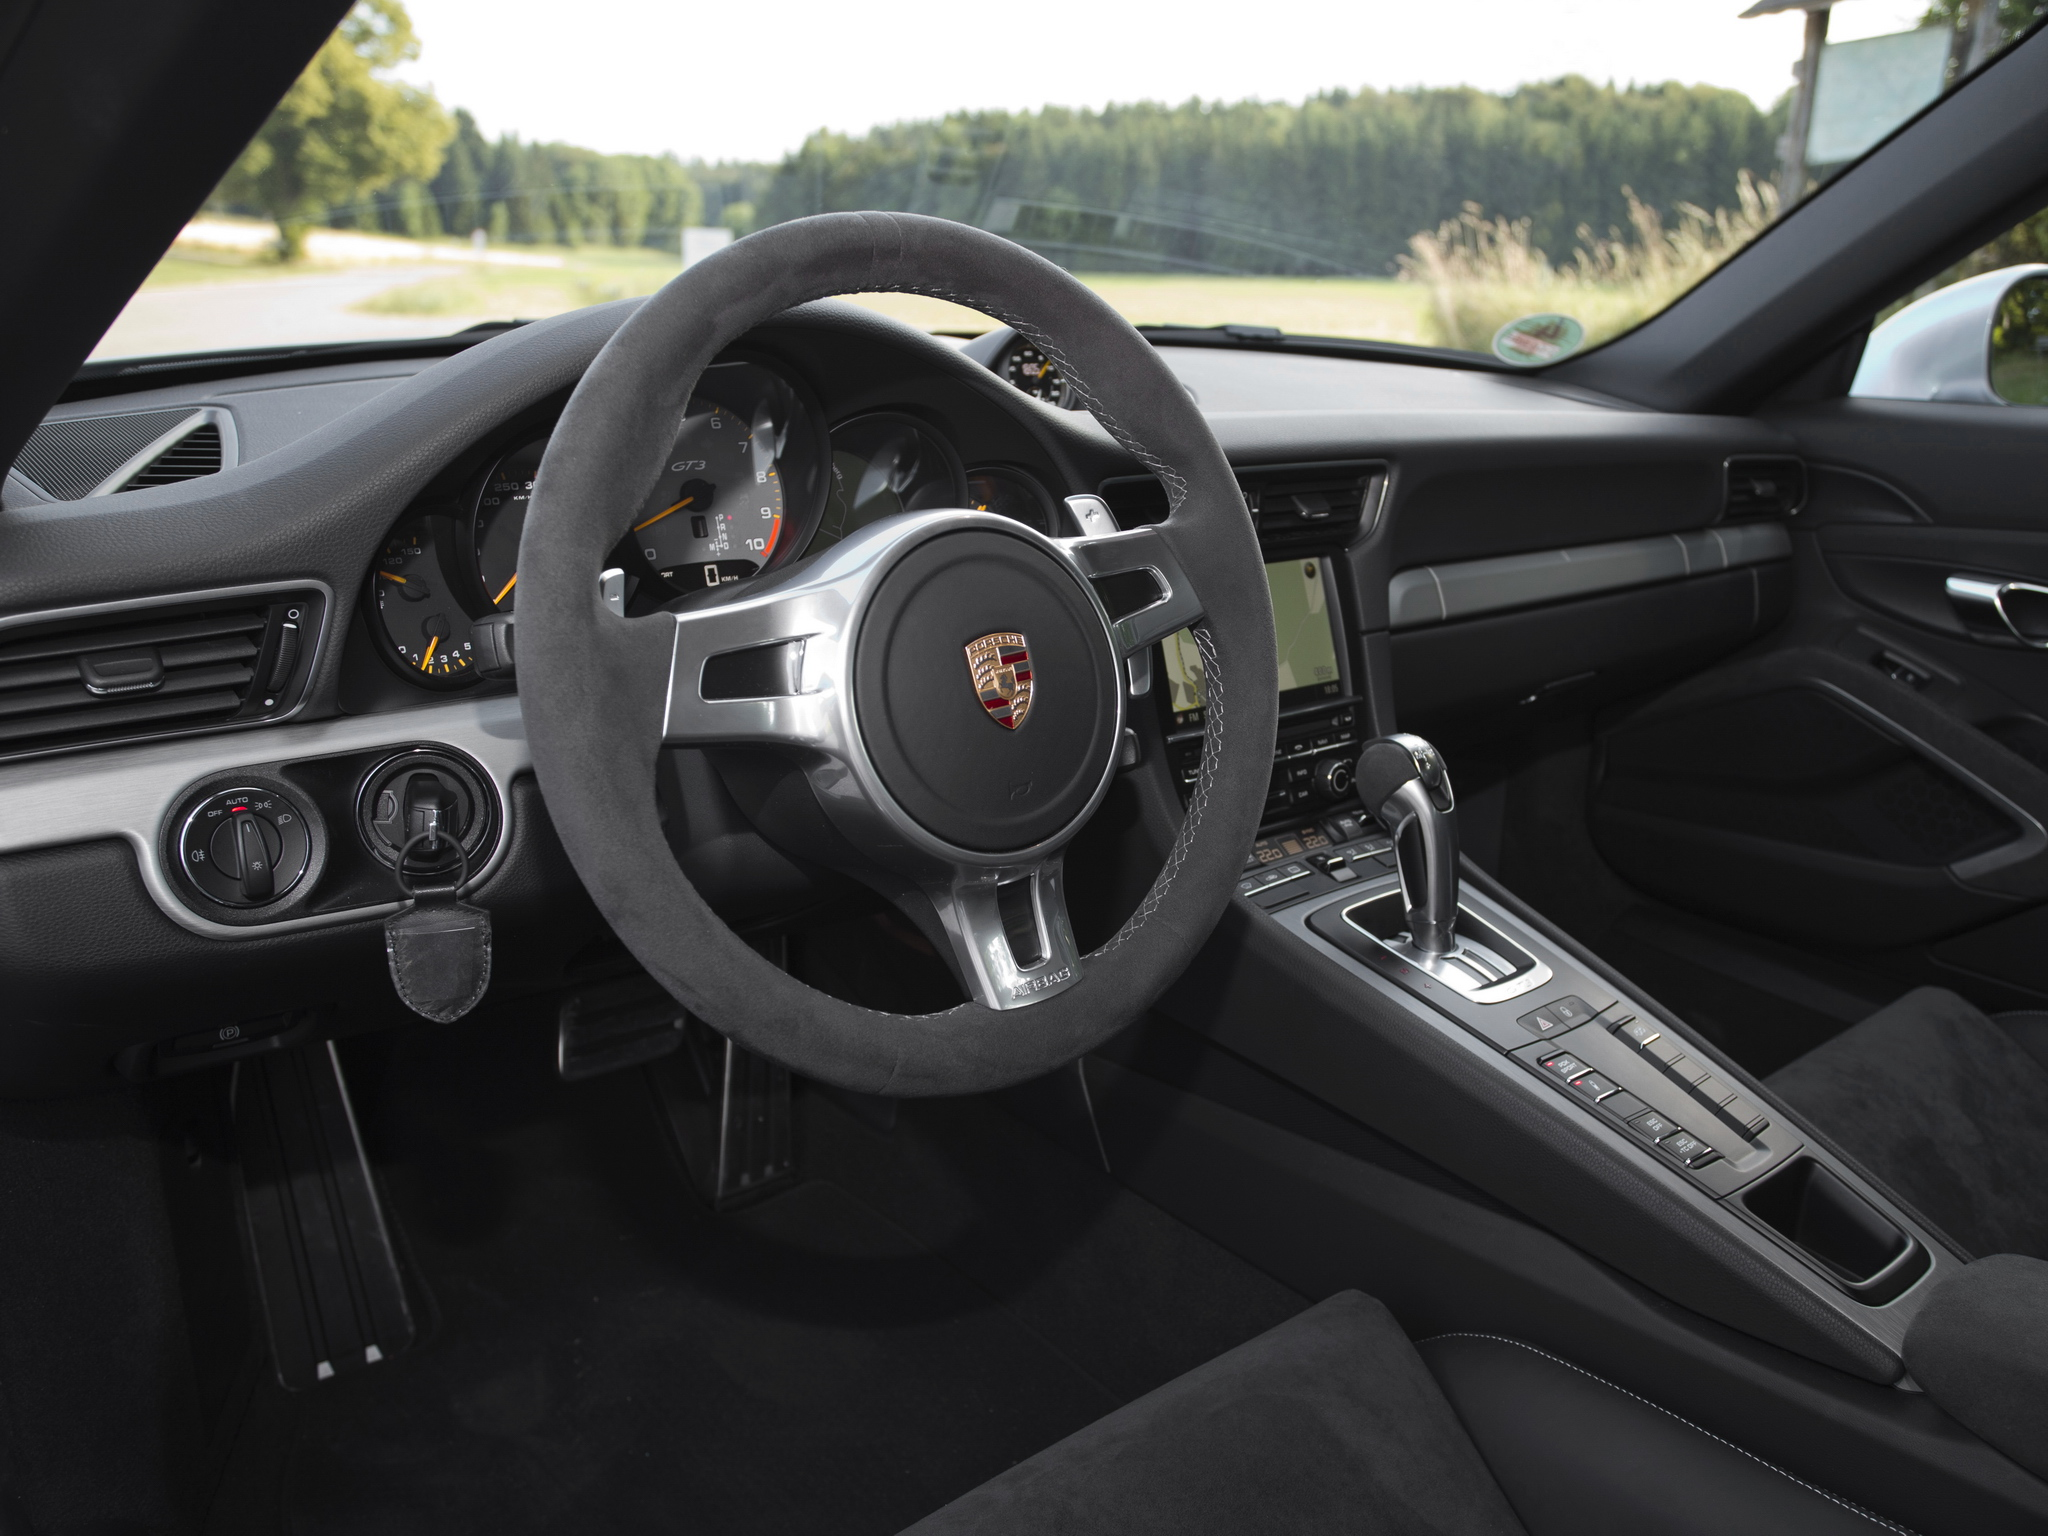 2014 porsche 911 gt3 991 supercar interior g wallpaper 2048x1536 230910 wallpaperup. Black Bedroom Furniture Sets. Home Design Ideas